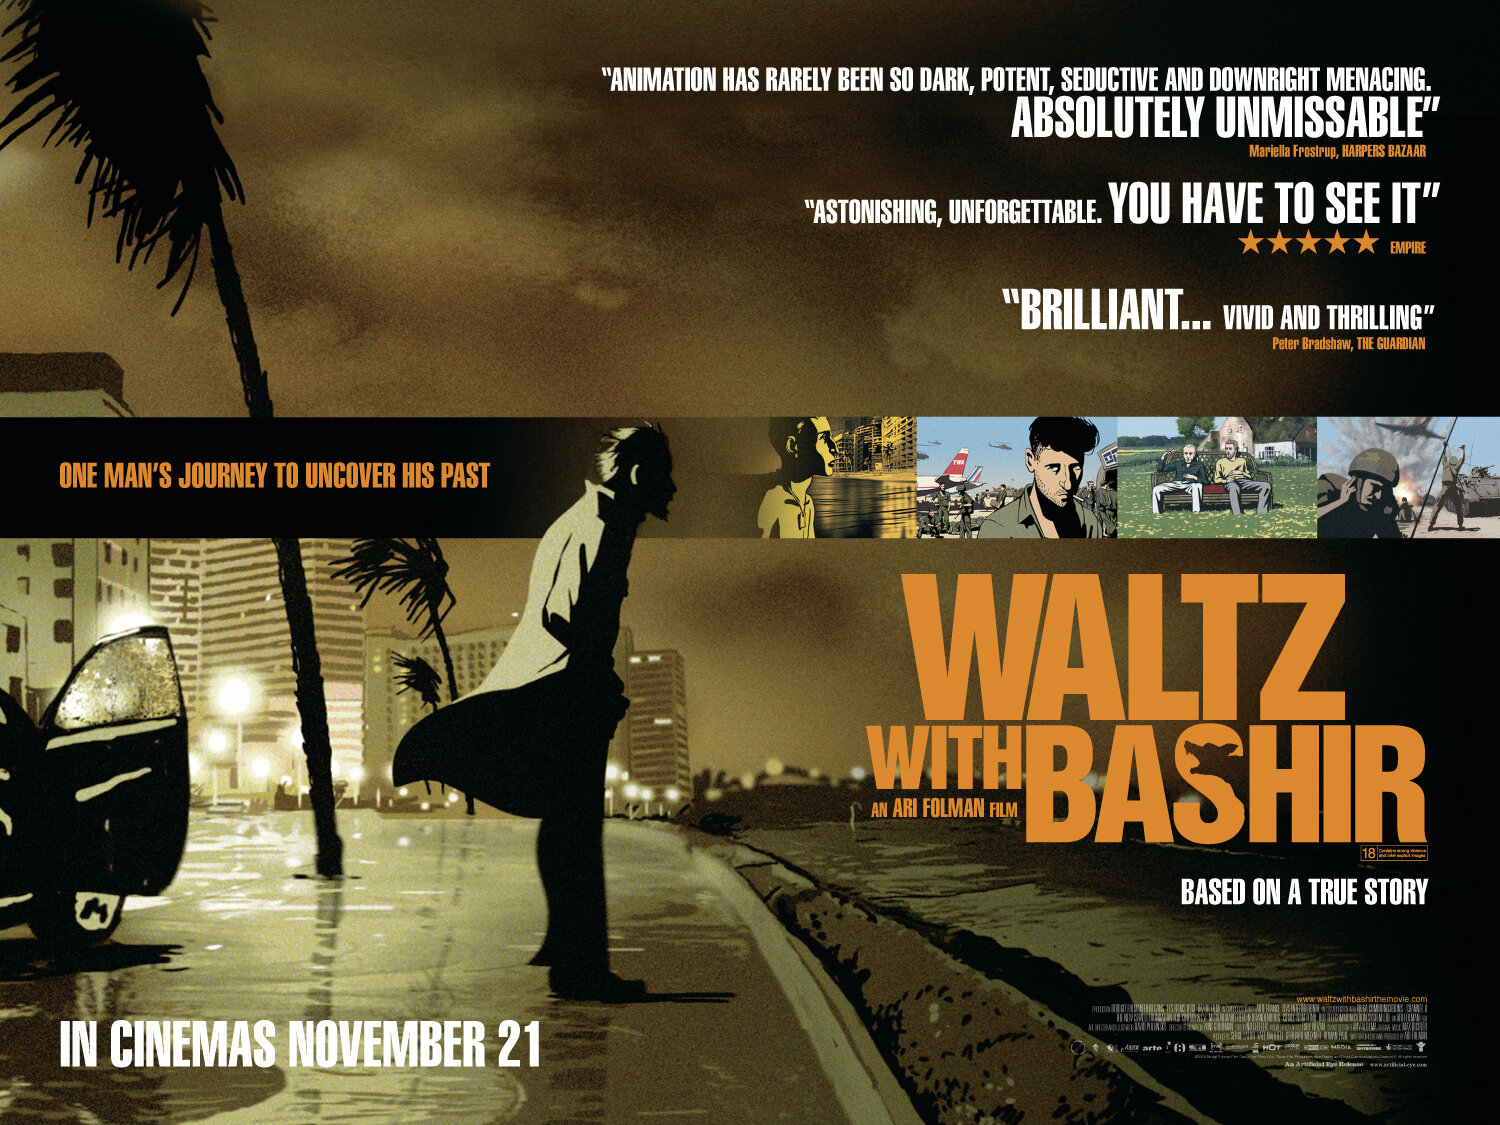 WALTZWITHBASHIR_QUAD_FINAL.jpg